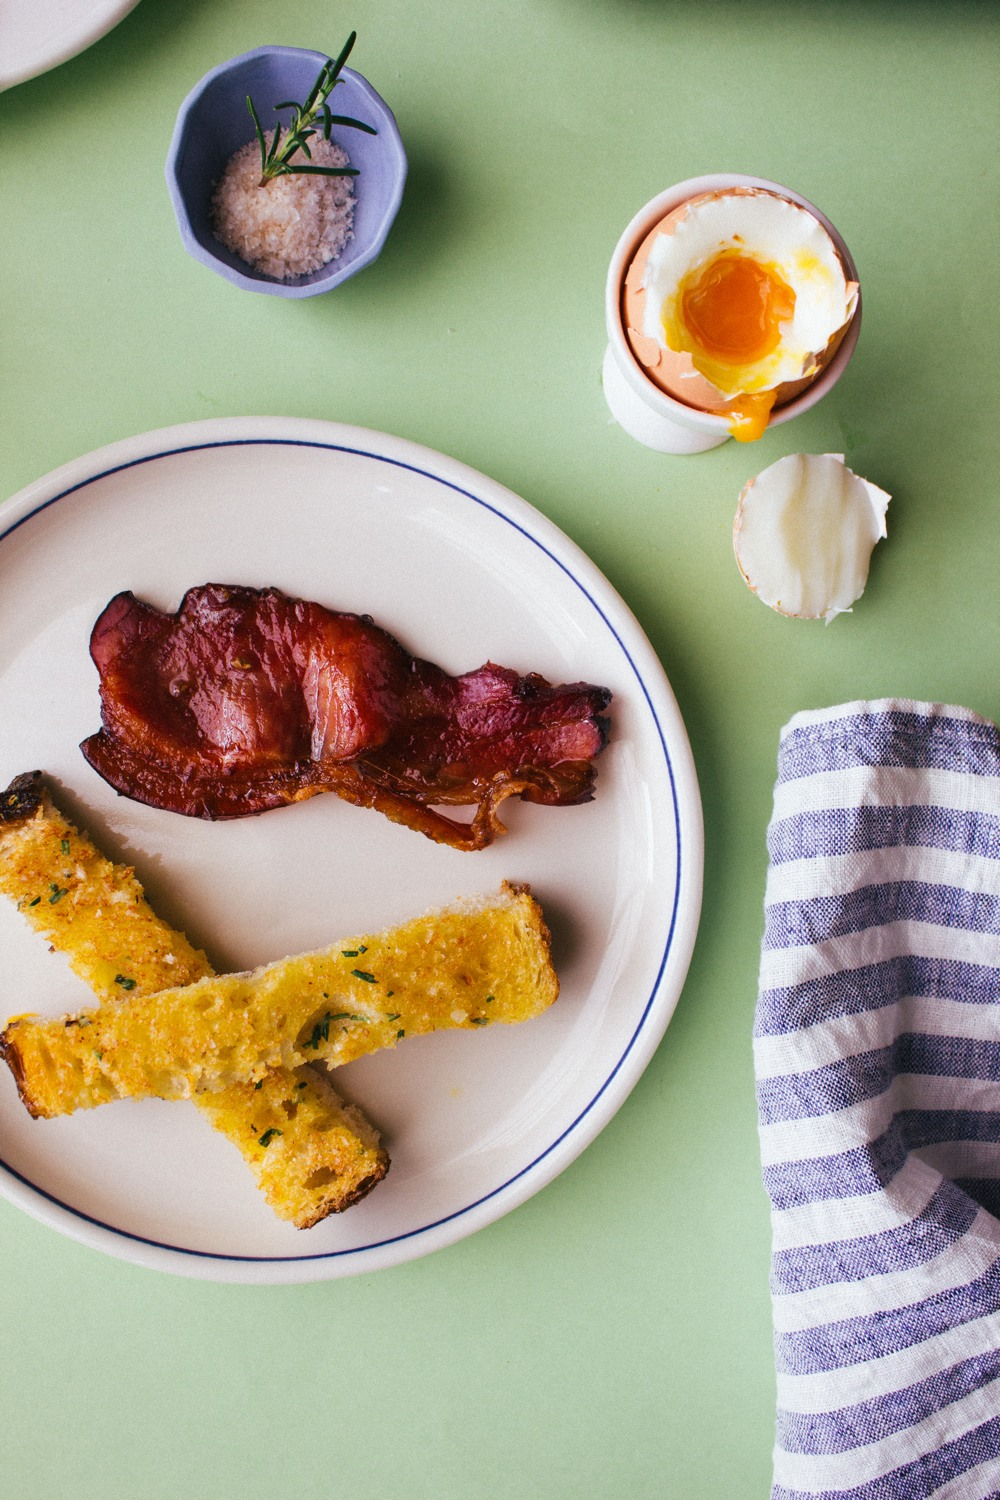 Soft-boiled eggs with herbed soldiers and espresso glazed bacon